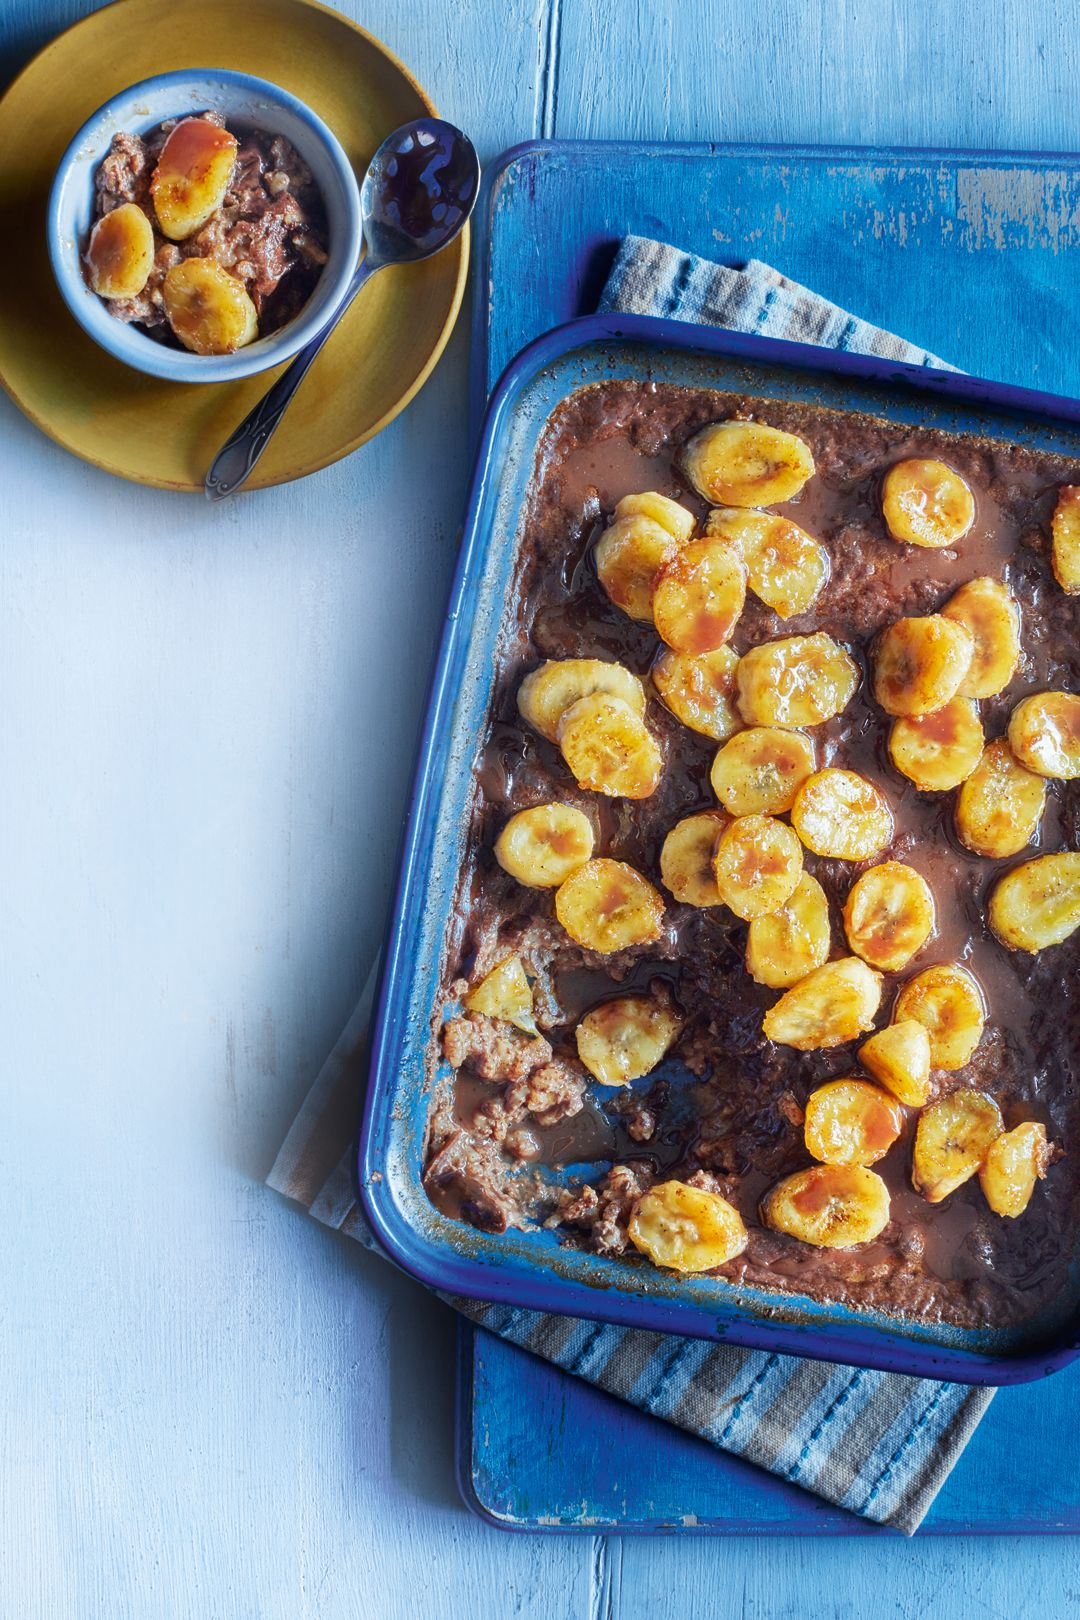 Chocolate & banana rice pudding. A rich and fruity pud ...